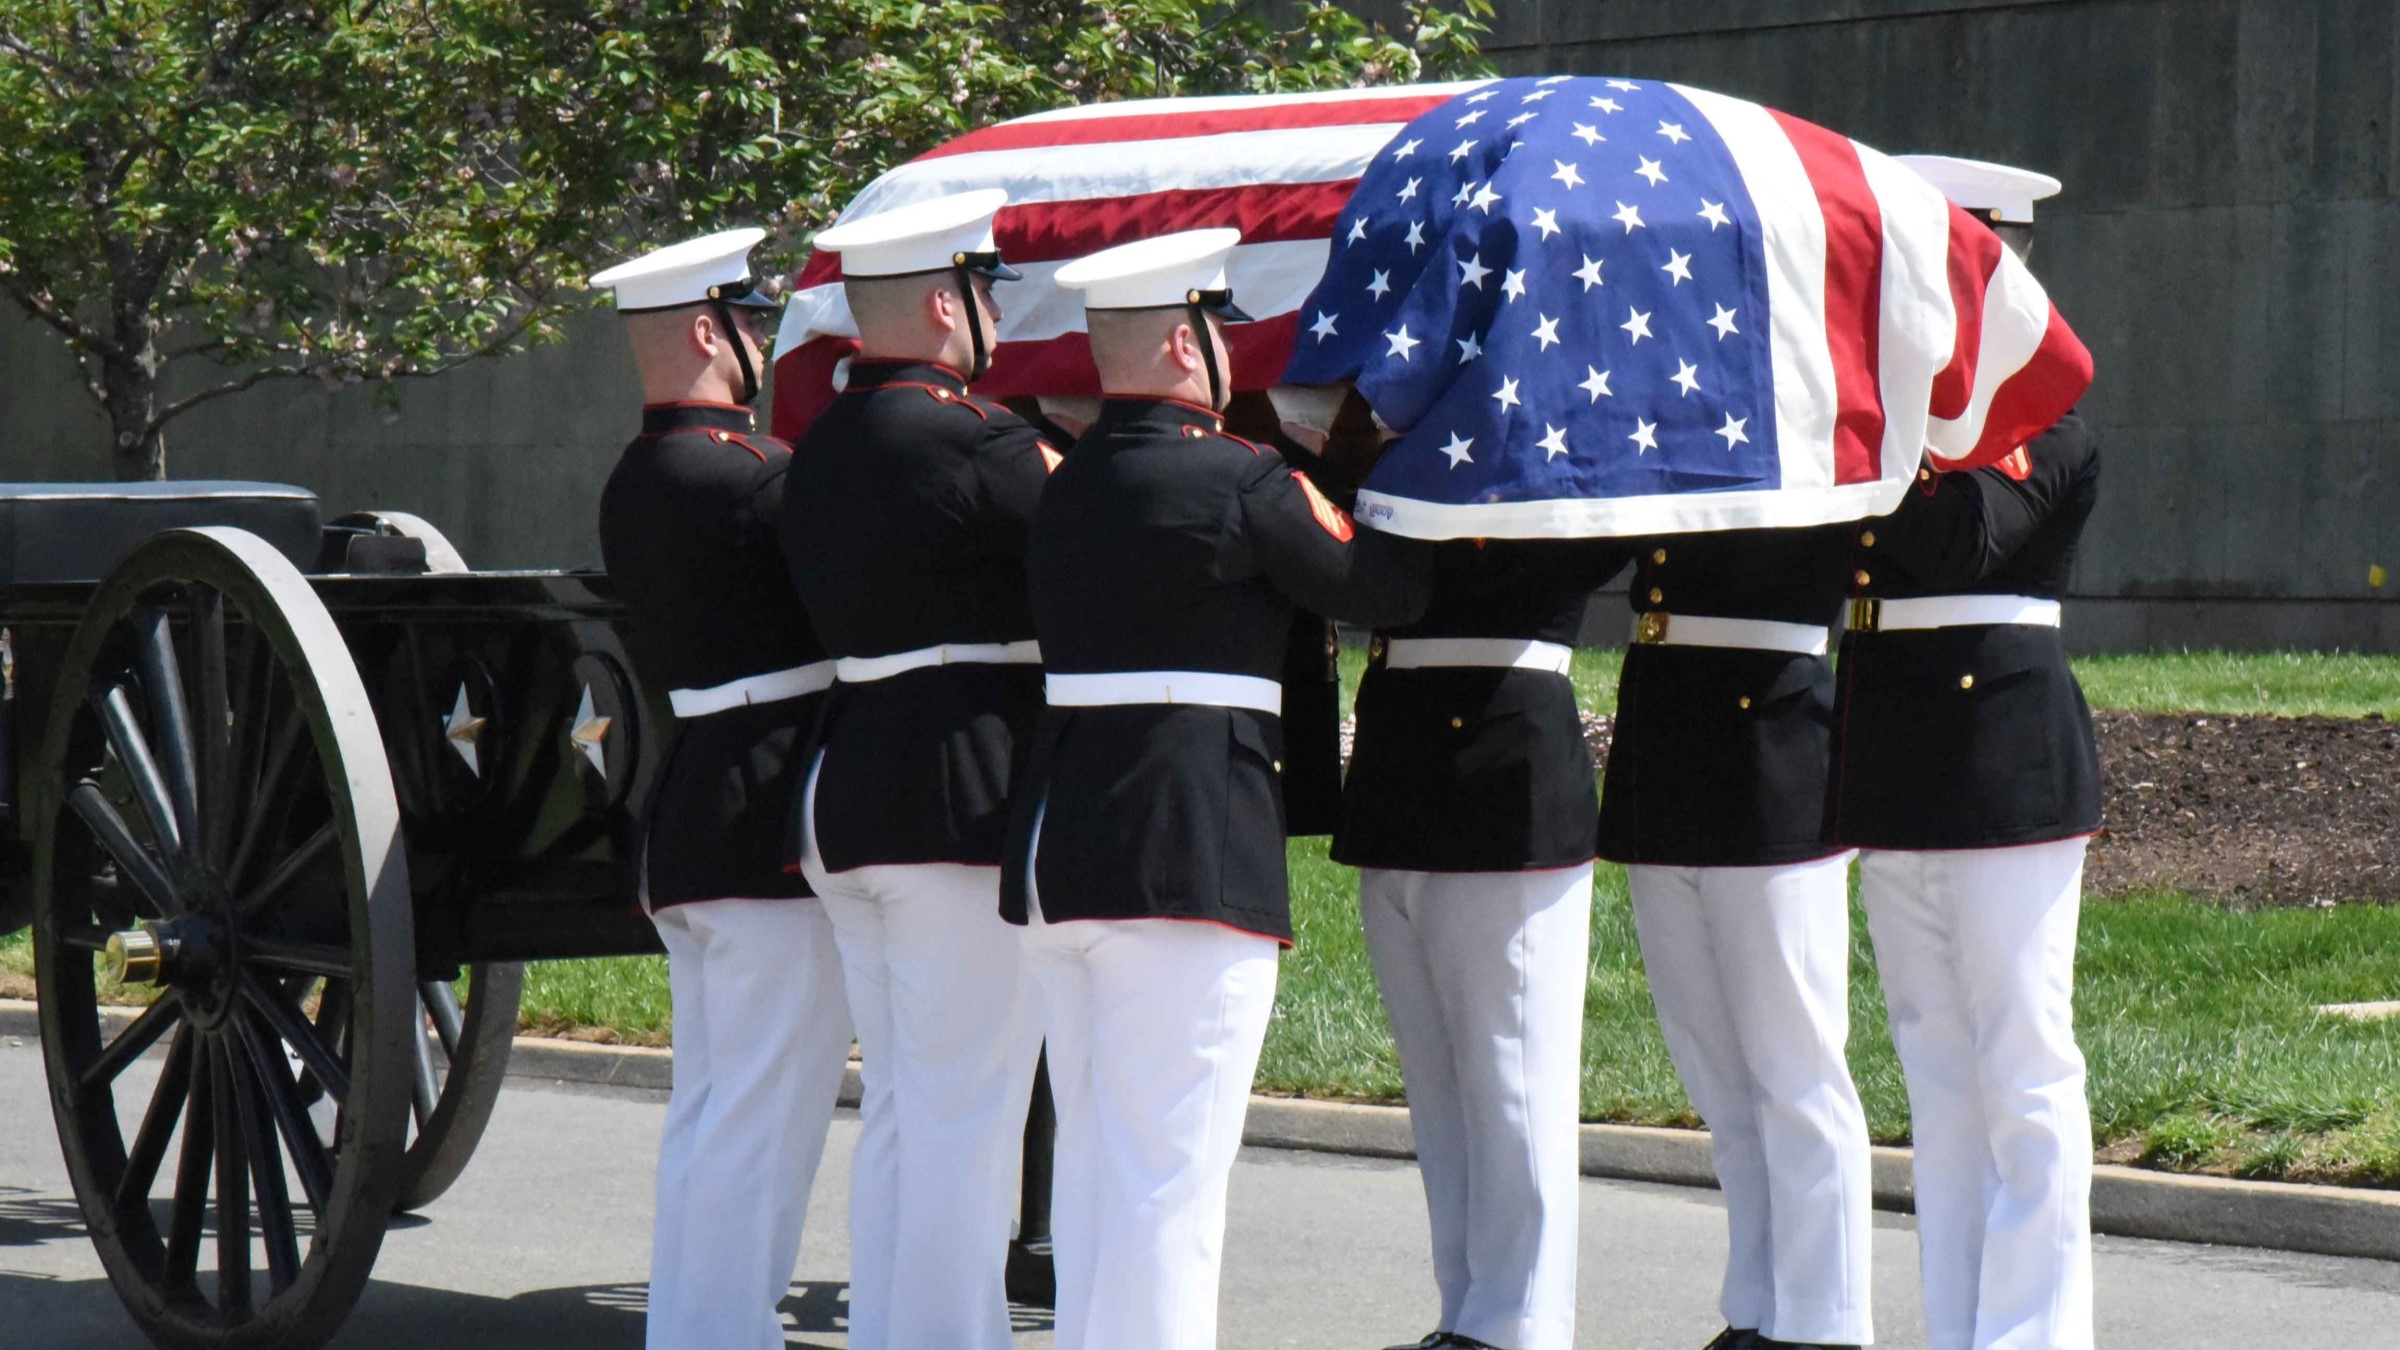 Marines carry flag-covered casket.